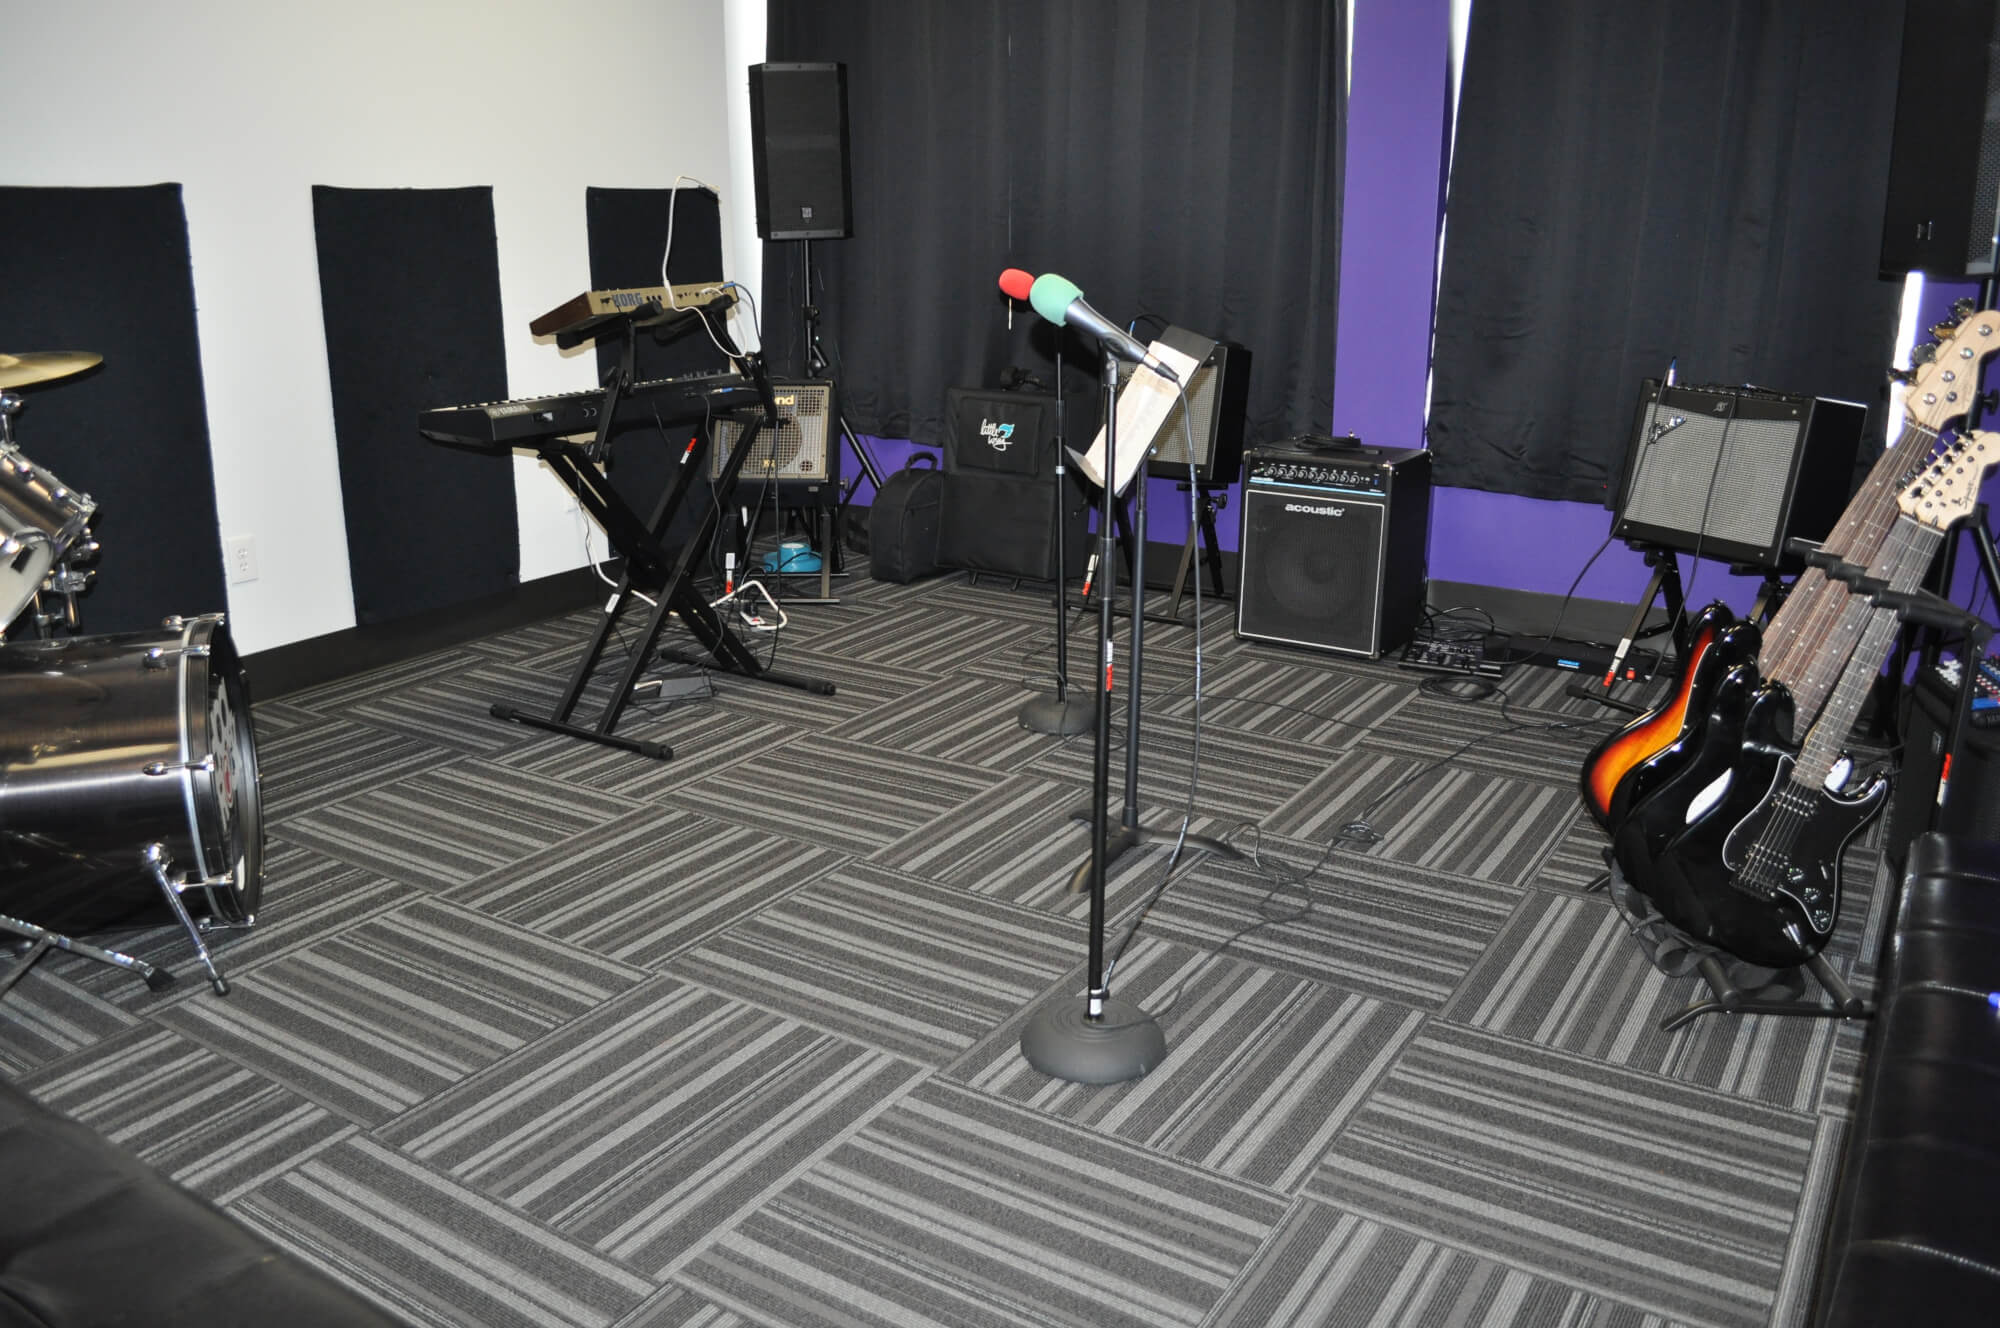 Professional grade studio and gear